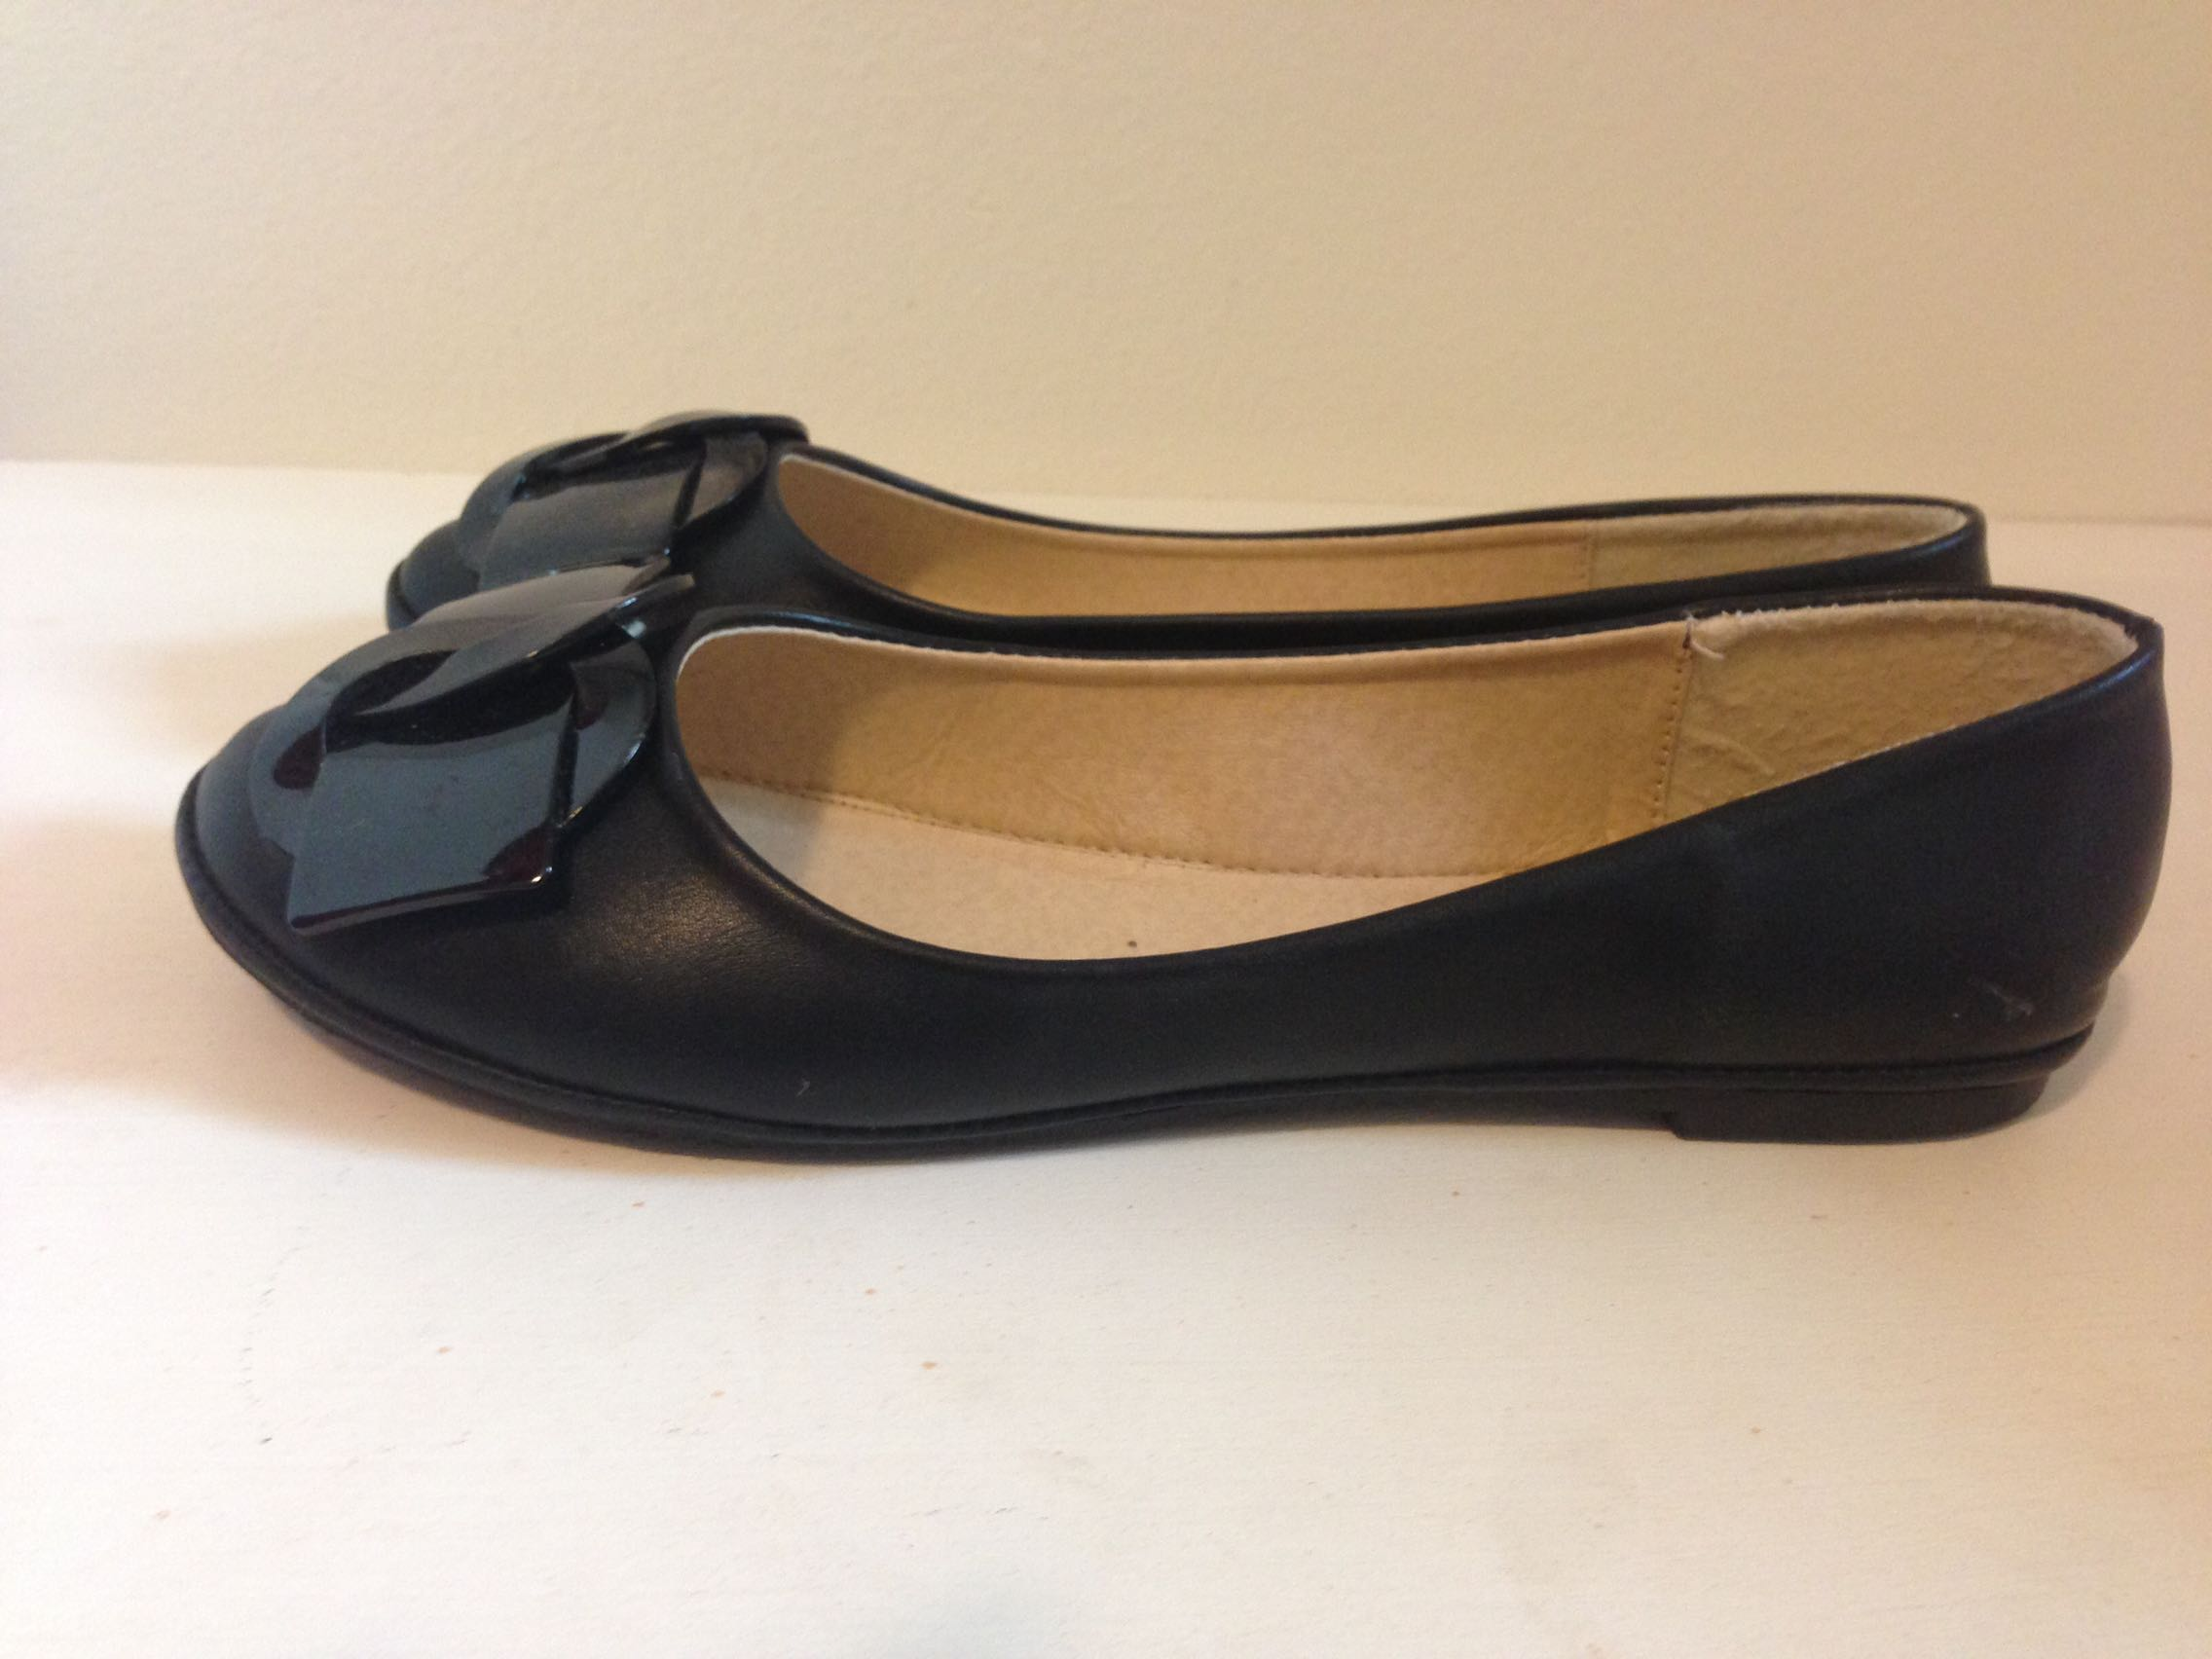 Black ballet flats with buckle detail